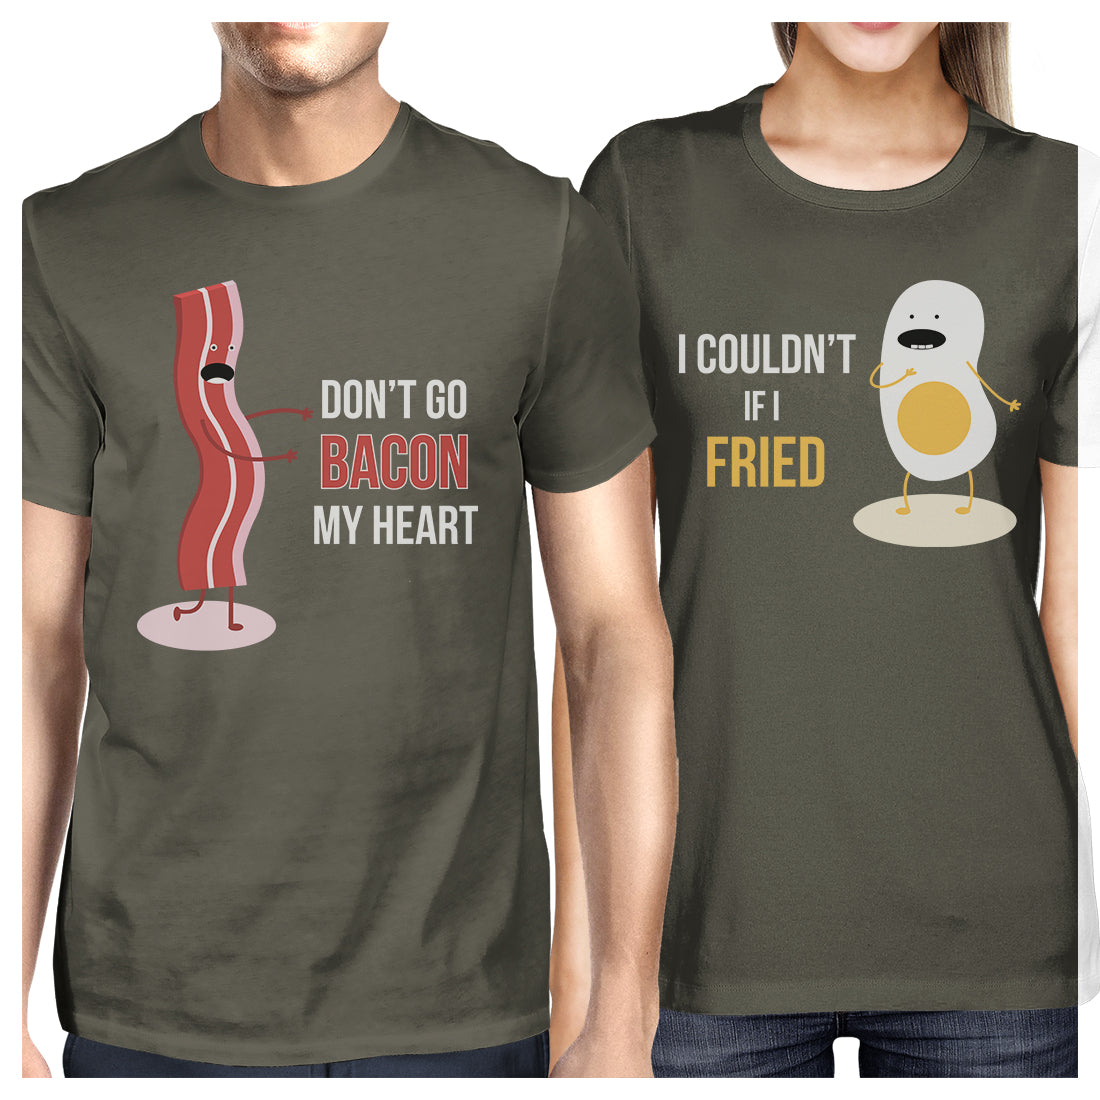 f5ca0f6d2b Bacon And Egg Matching Couple Gift Shirts Cool Grey For Anniversary ...